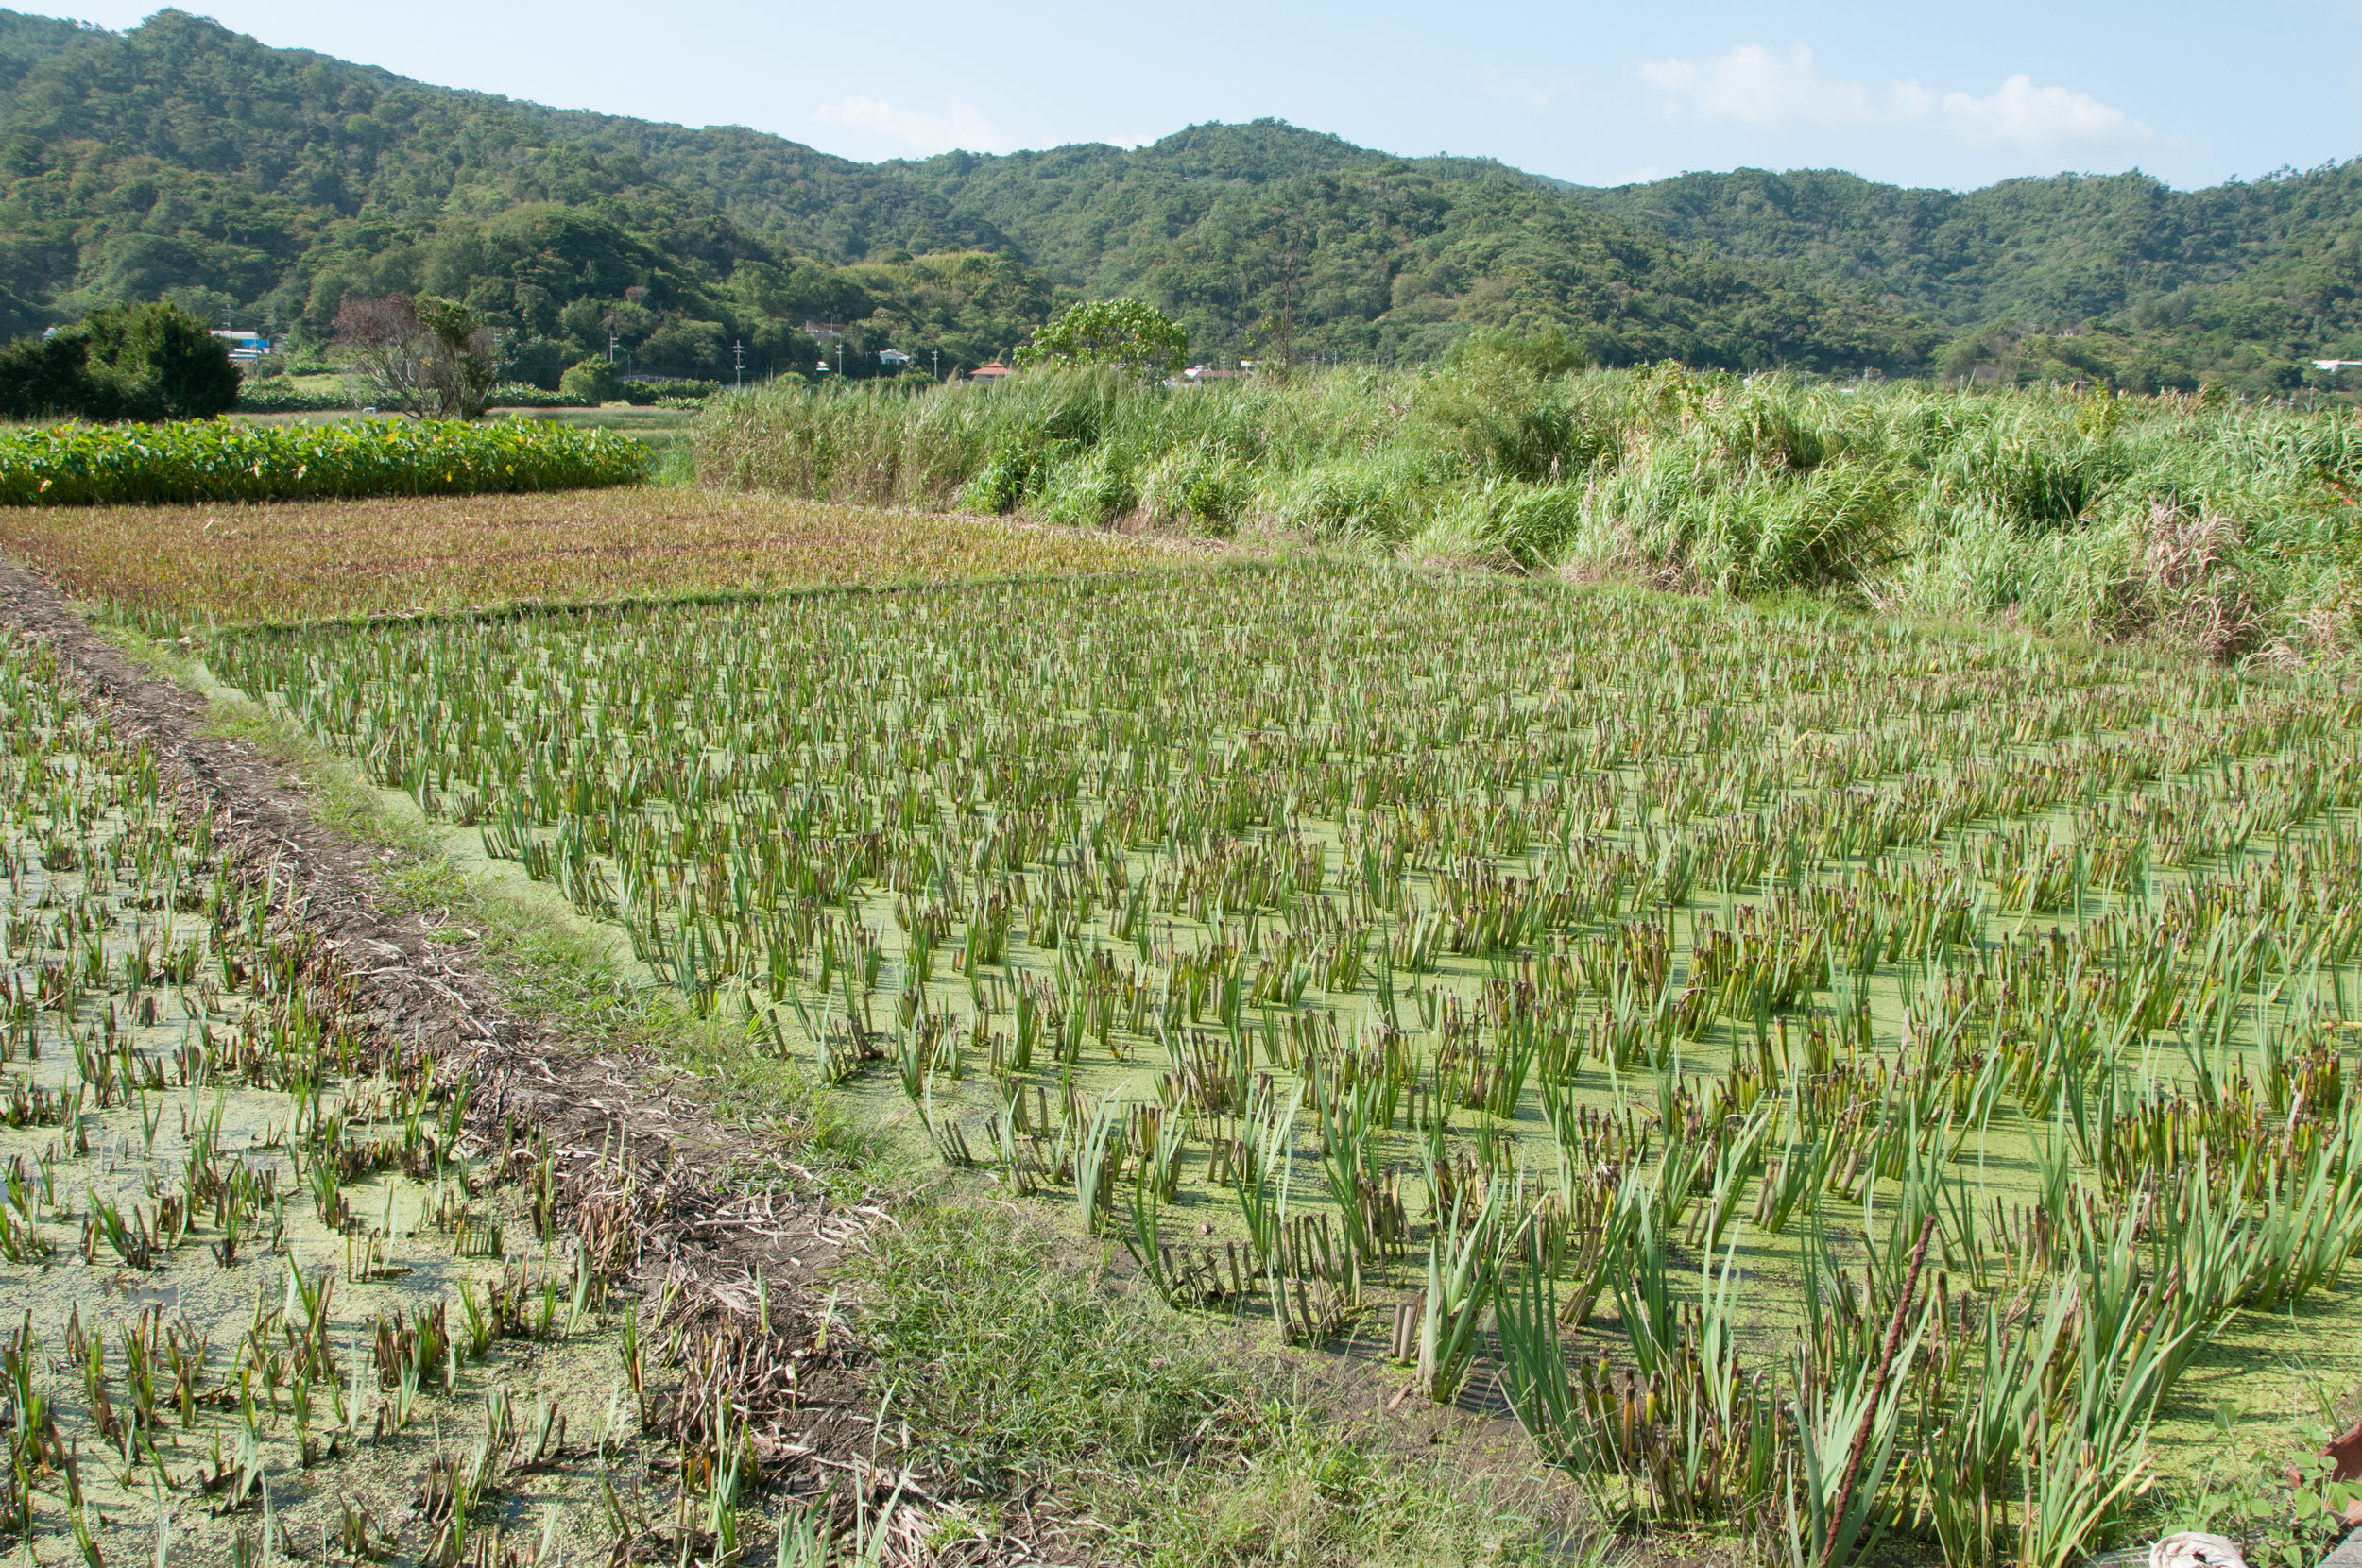 A good illustration of the habitat loss in Okinawa. Culture leads to destroying the jungle to make fields.